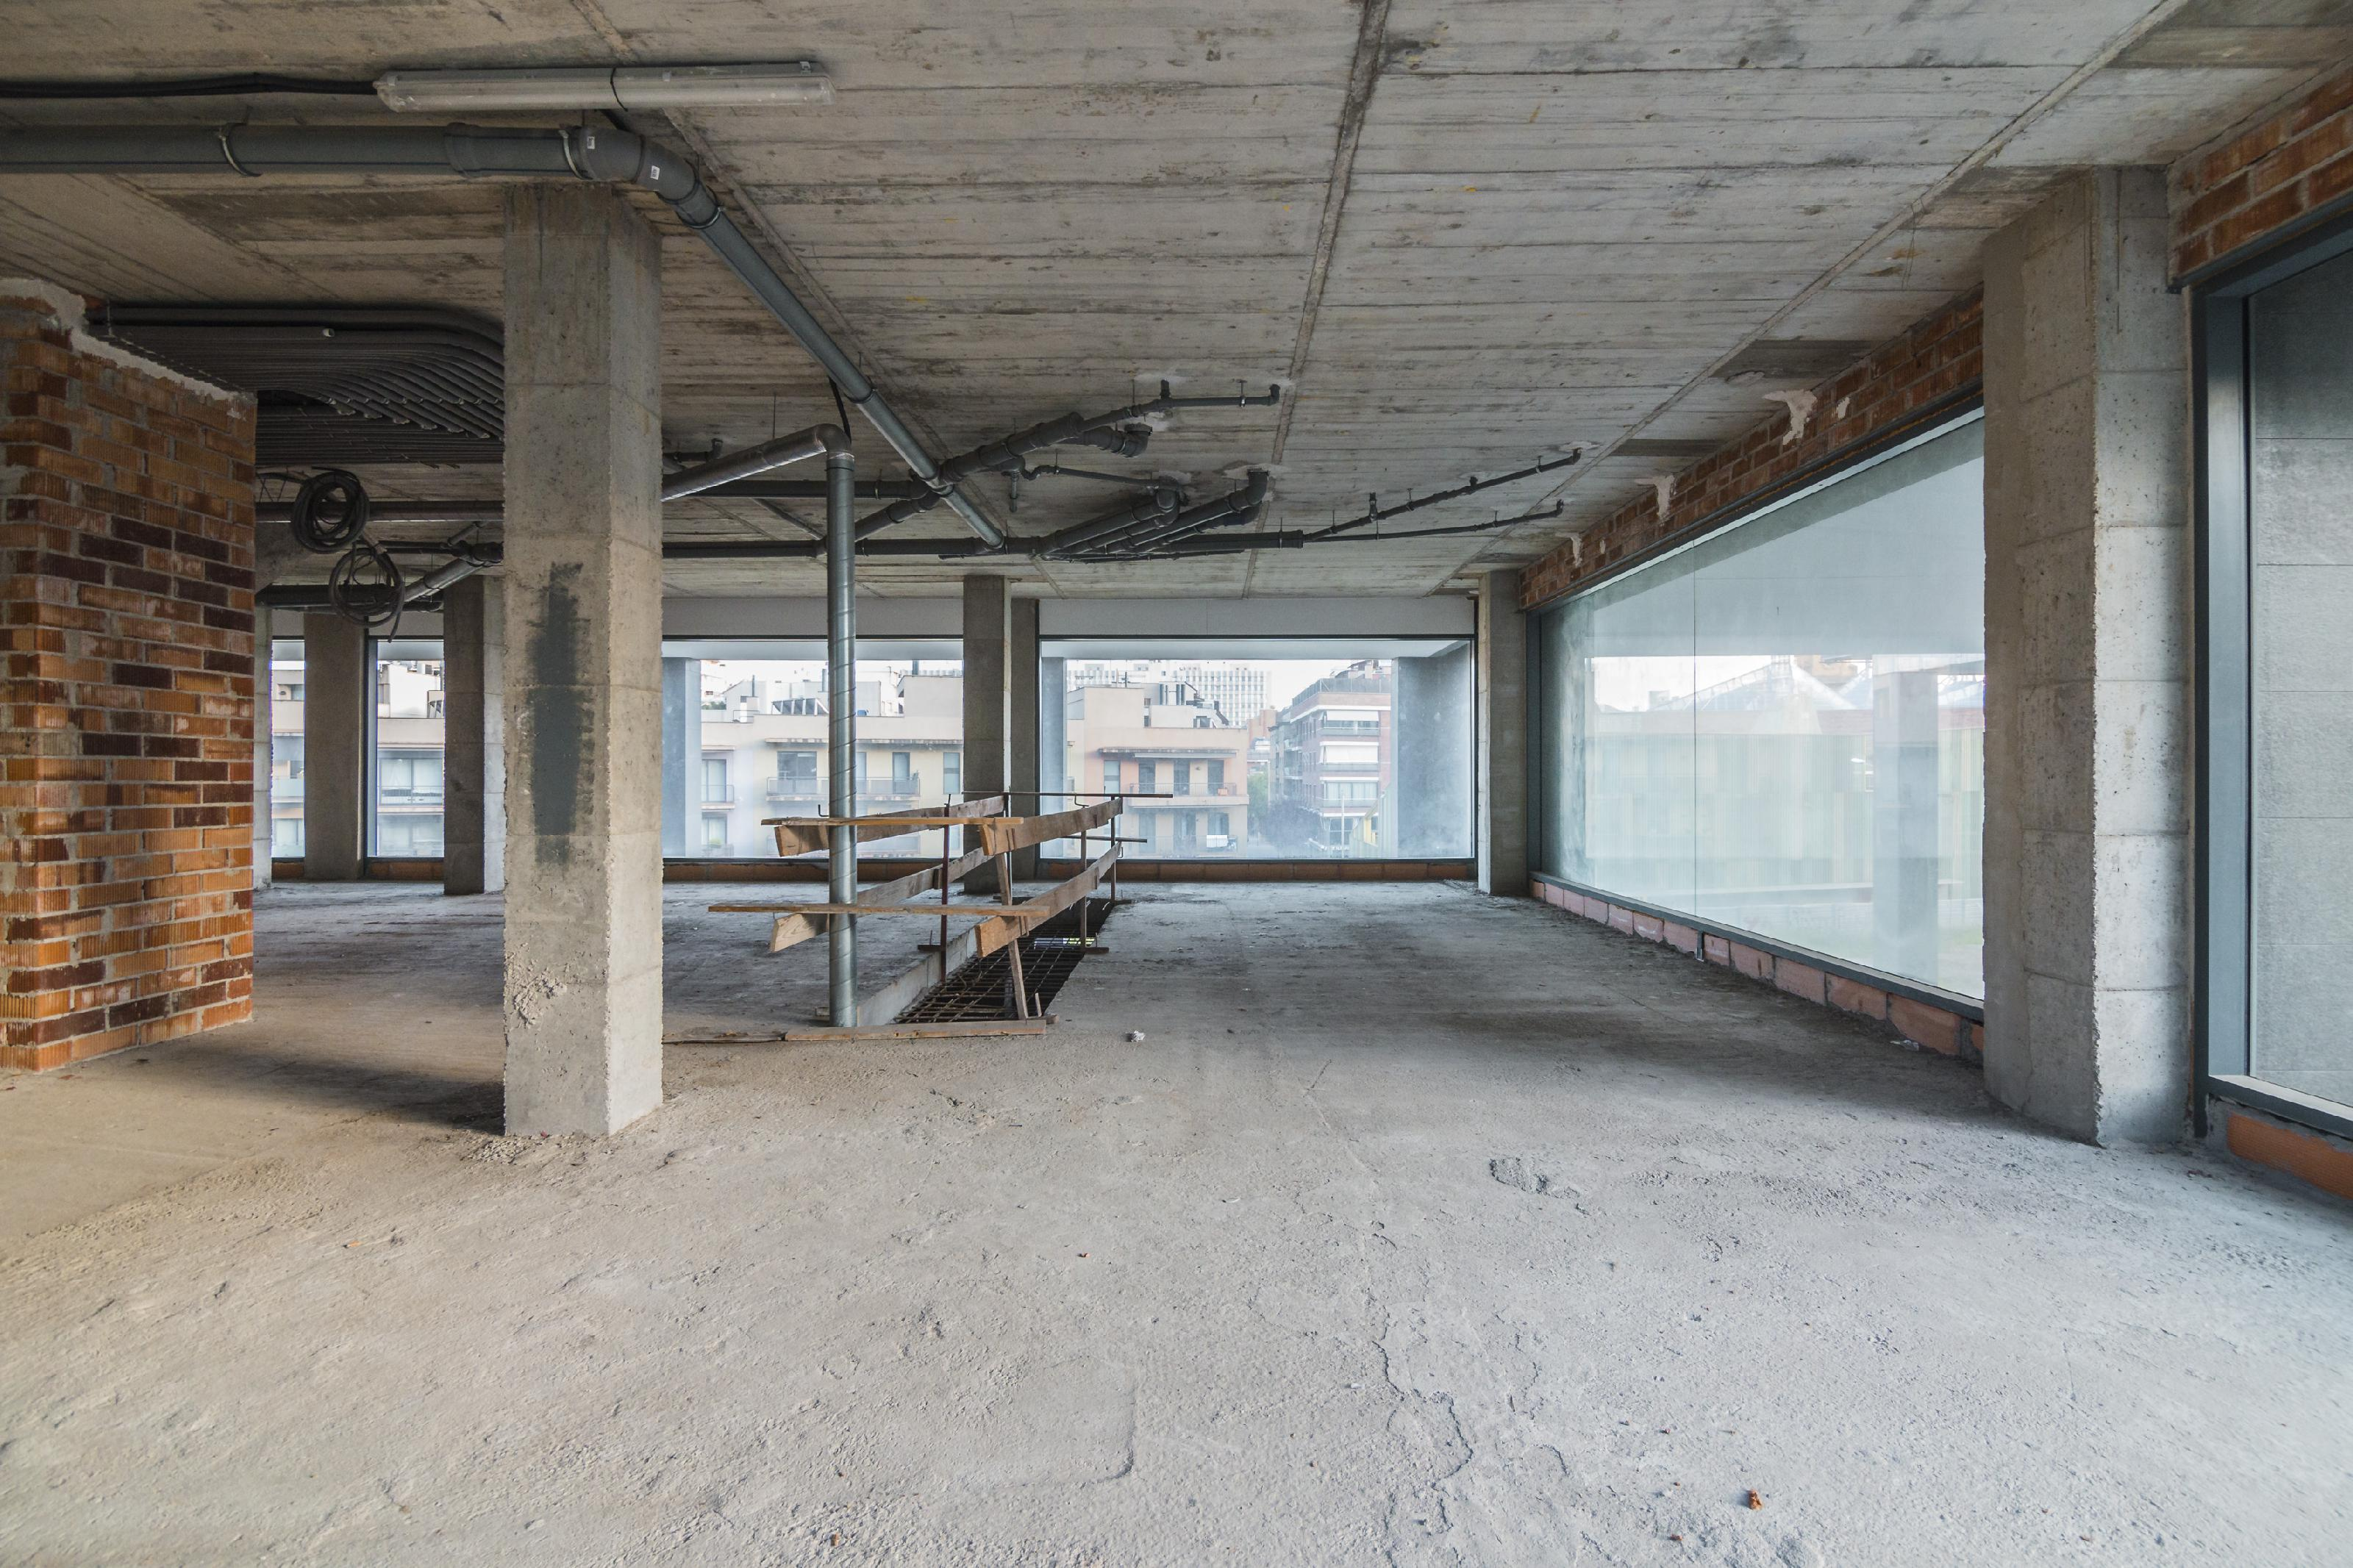 208066 Commercial Premises for sale in Les Corts, Les Corts 14